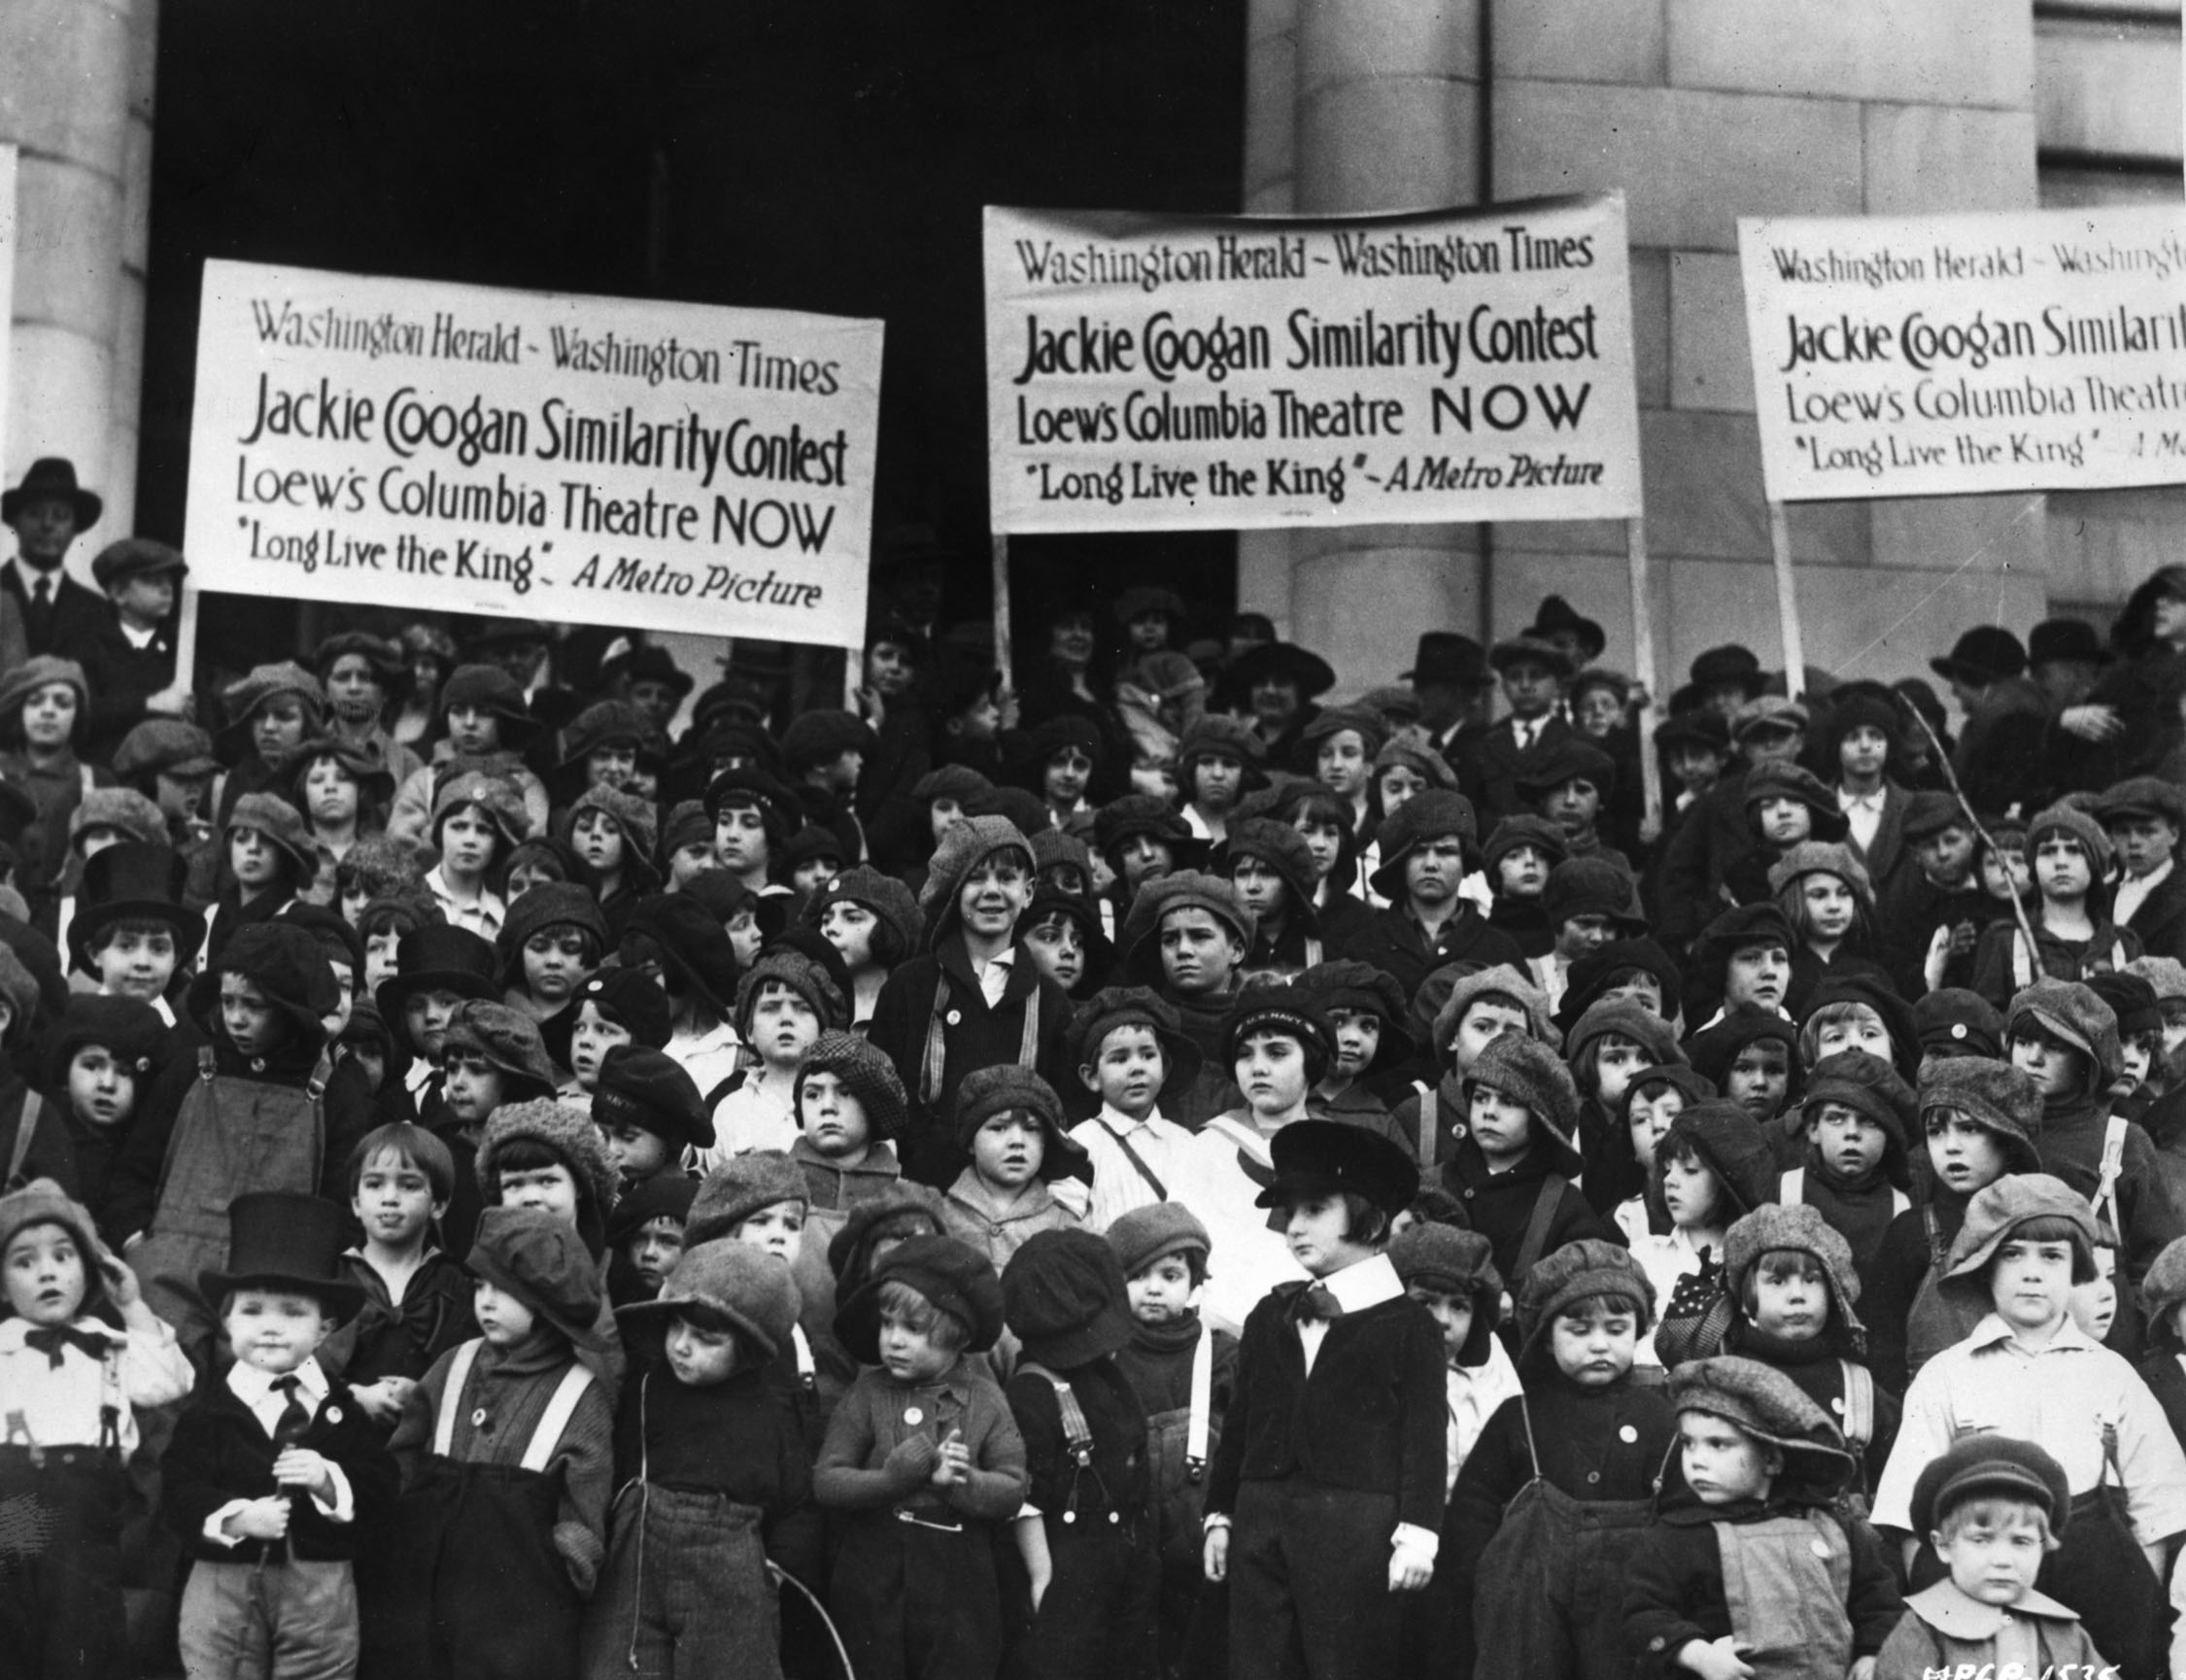 Boys compete in a Jackie Coogan (of The Kid fame) similarity contest, staged to promote Coogan's 1923 film, Long Live the King.